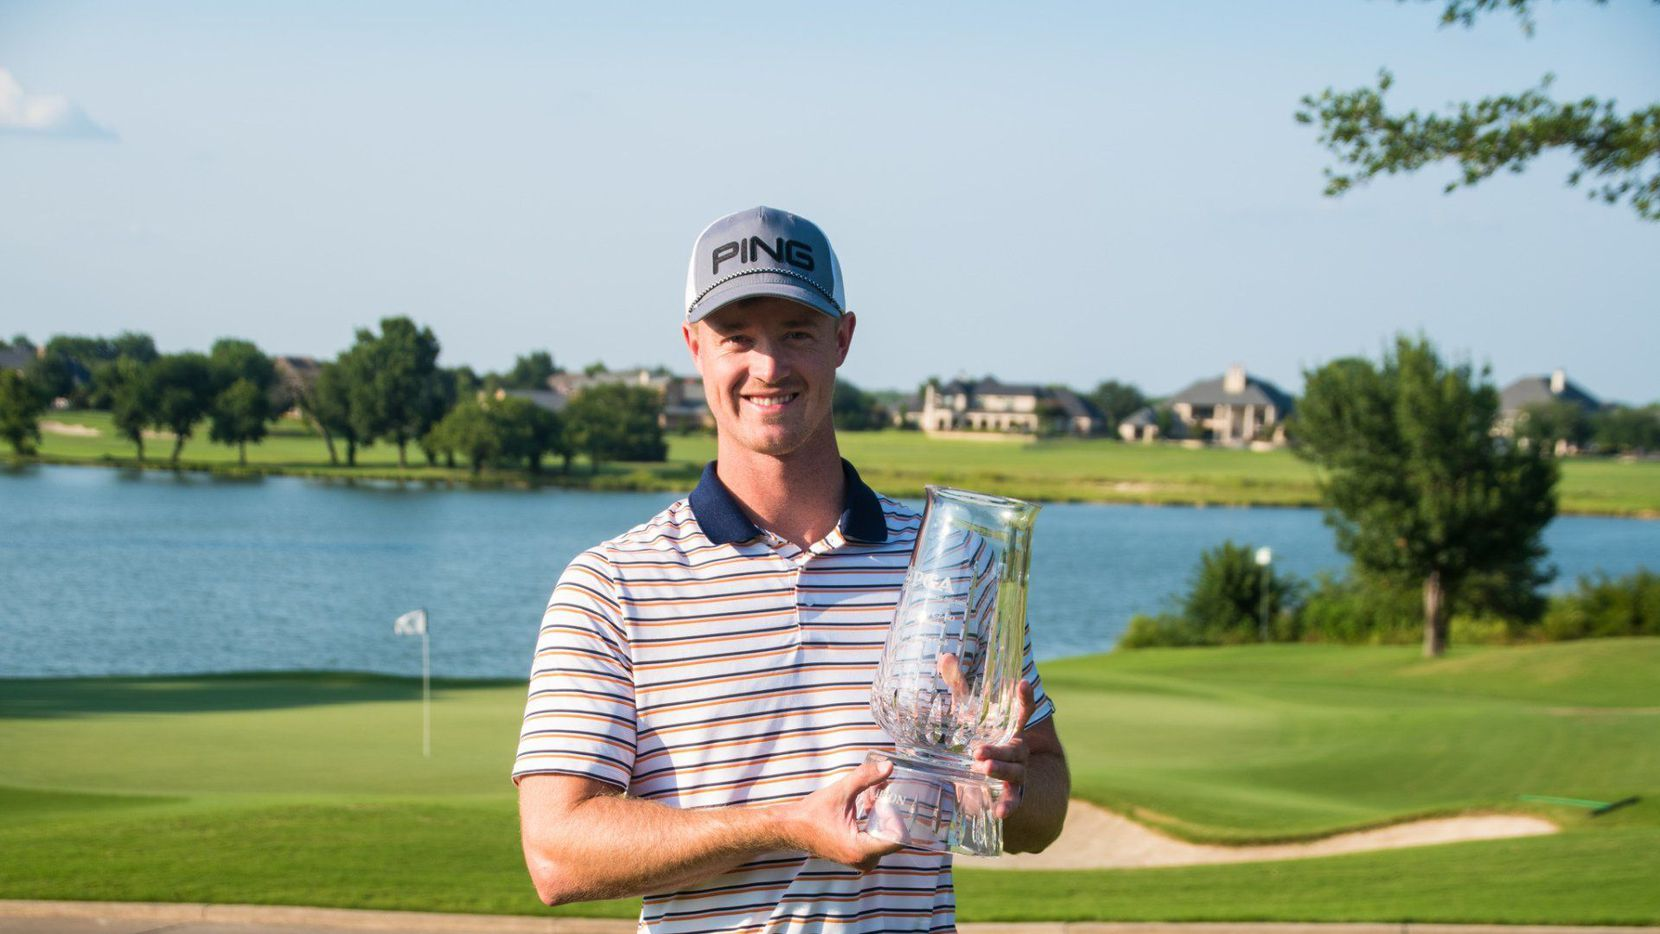 Brandon Bingaman, assistant pro at Bent Tree Country Club, won the Prize Possessions   E-Z-GO Eastern Championship hosted at Gentle Creek Country Club.  Bingaman finished the Championship at 9-under-par after rounds of 66-69-135. He has won the NTPGA's first three majors with one tournament remaining in August.